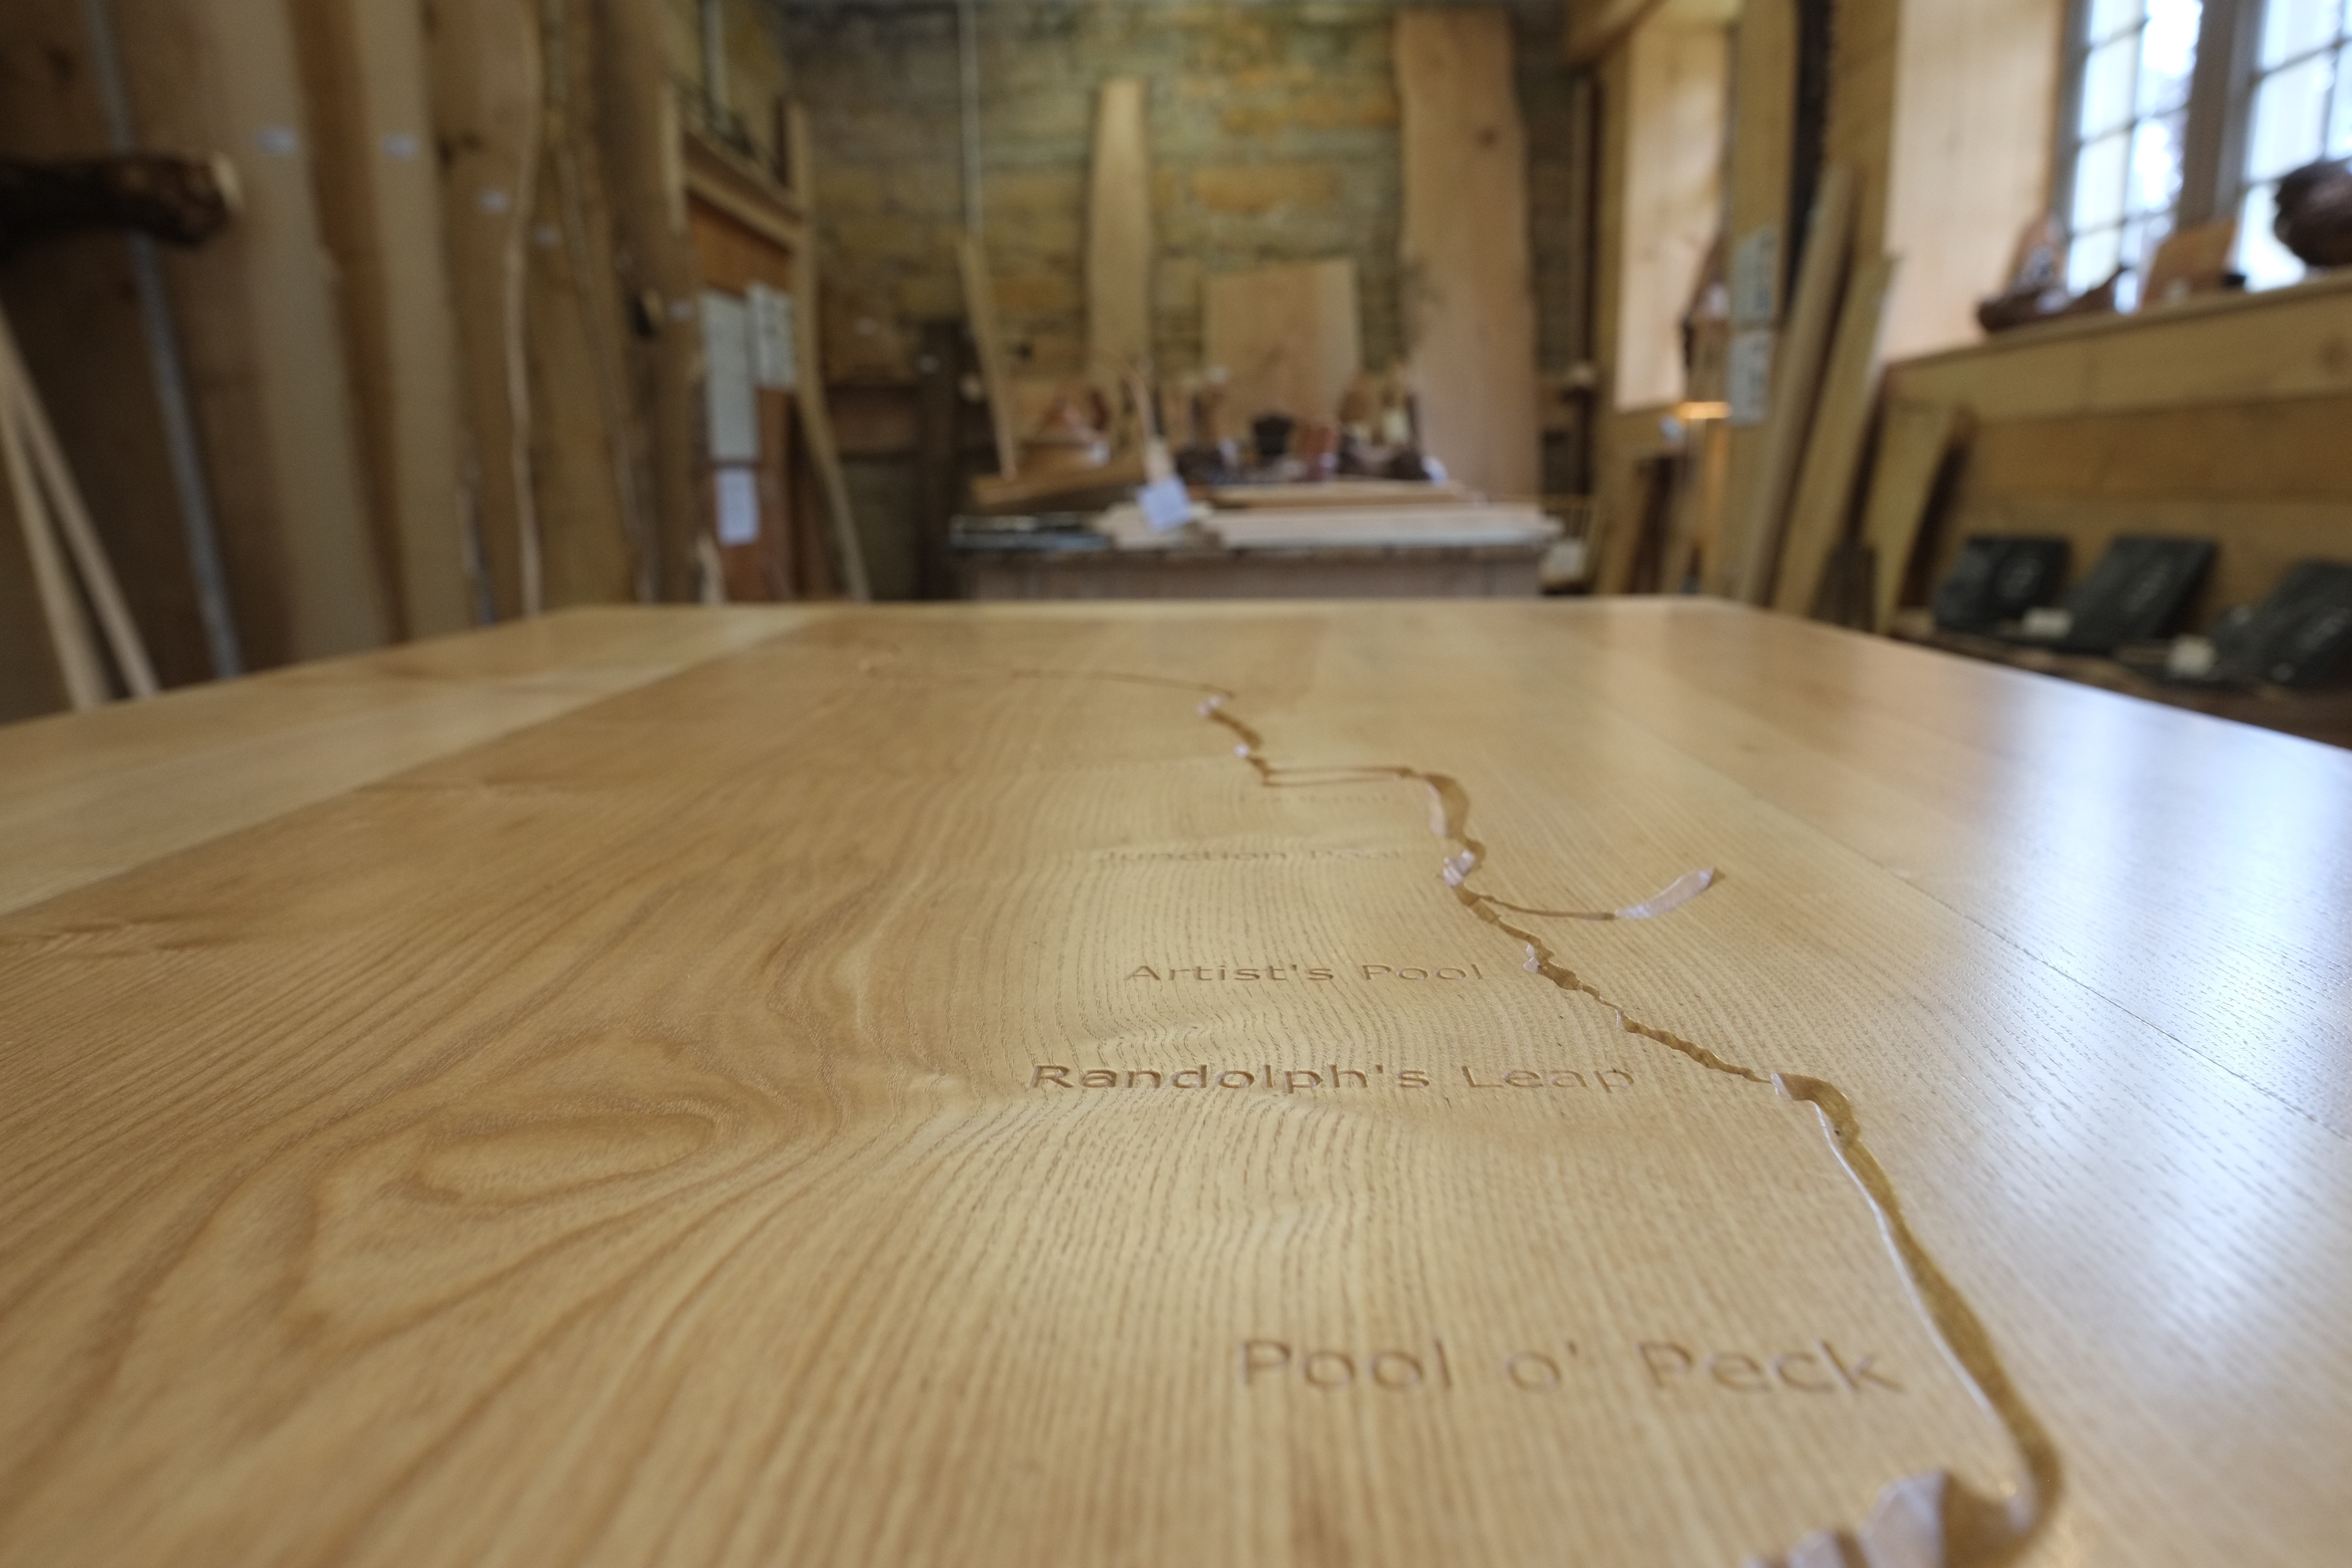 River Table in the Boardroom closeup